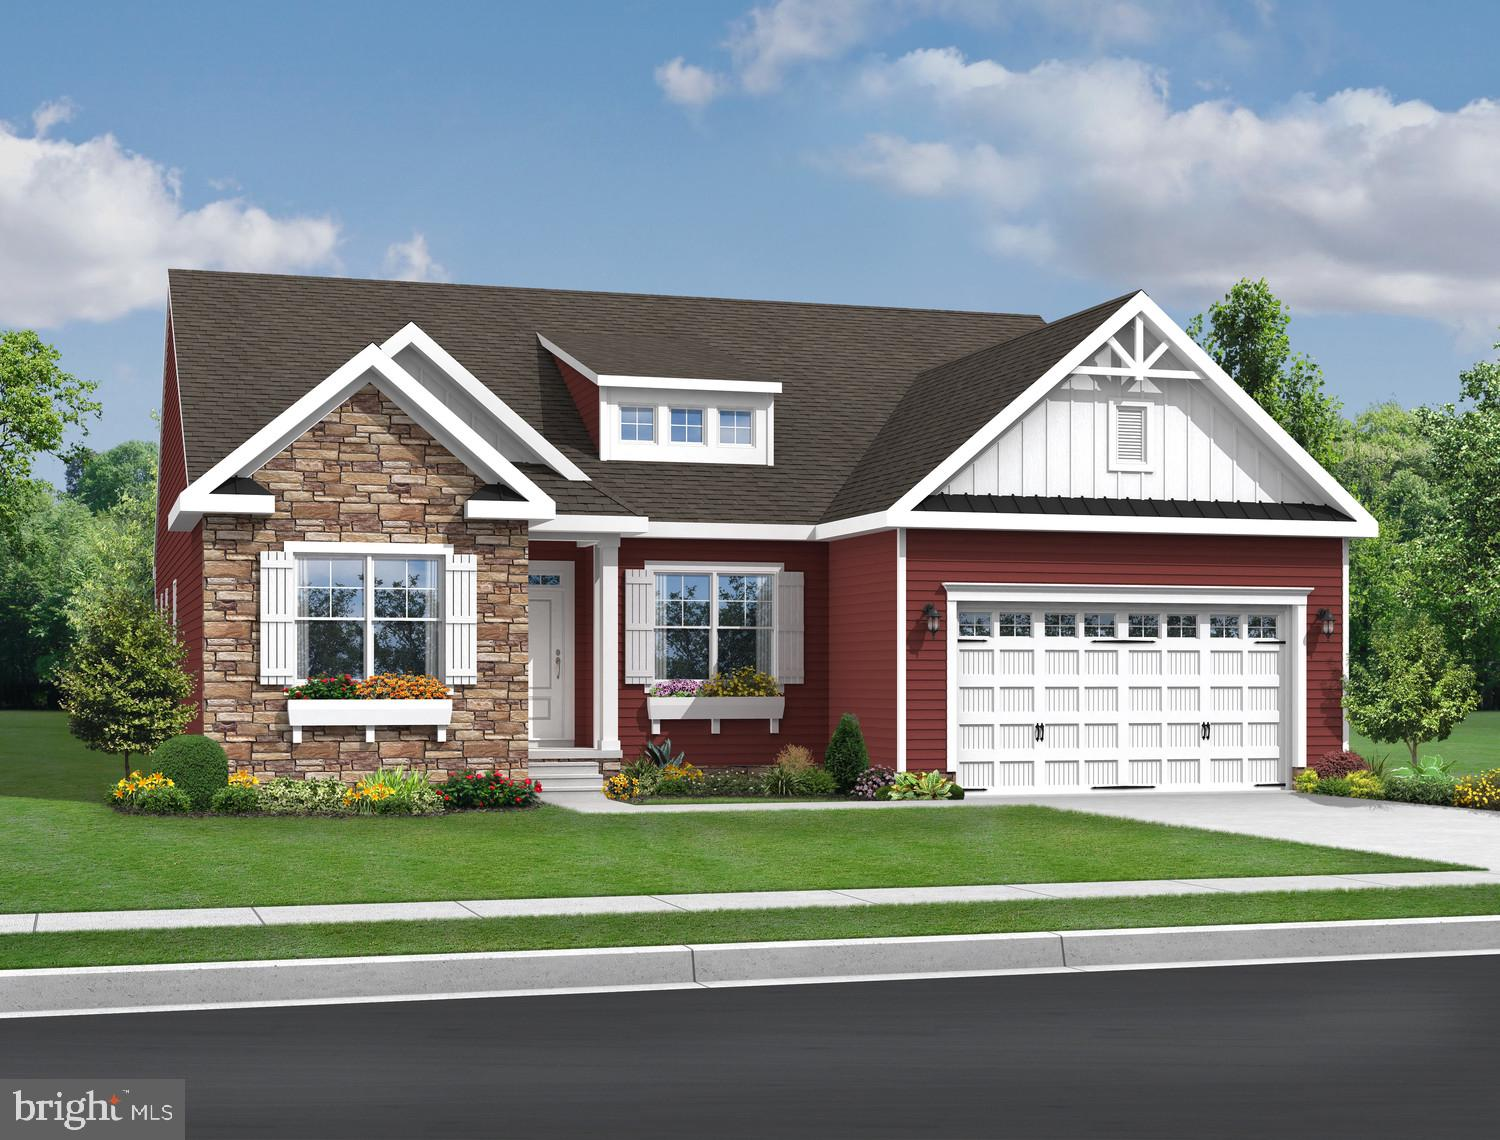 The Amelia model in the Kincade Series has three bedrooms and two full bathrooms, an open floor plan